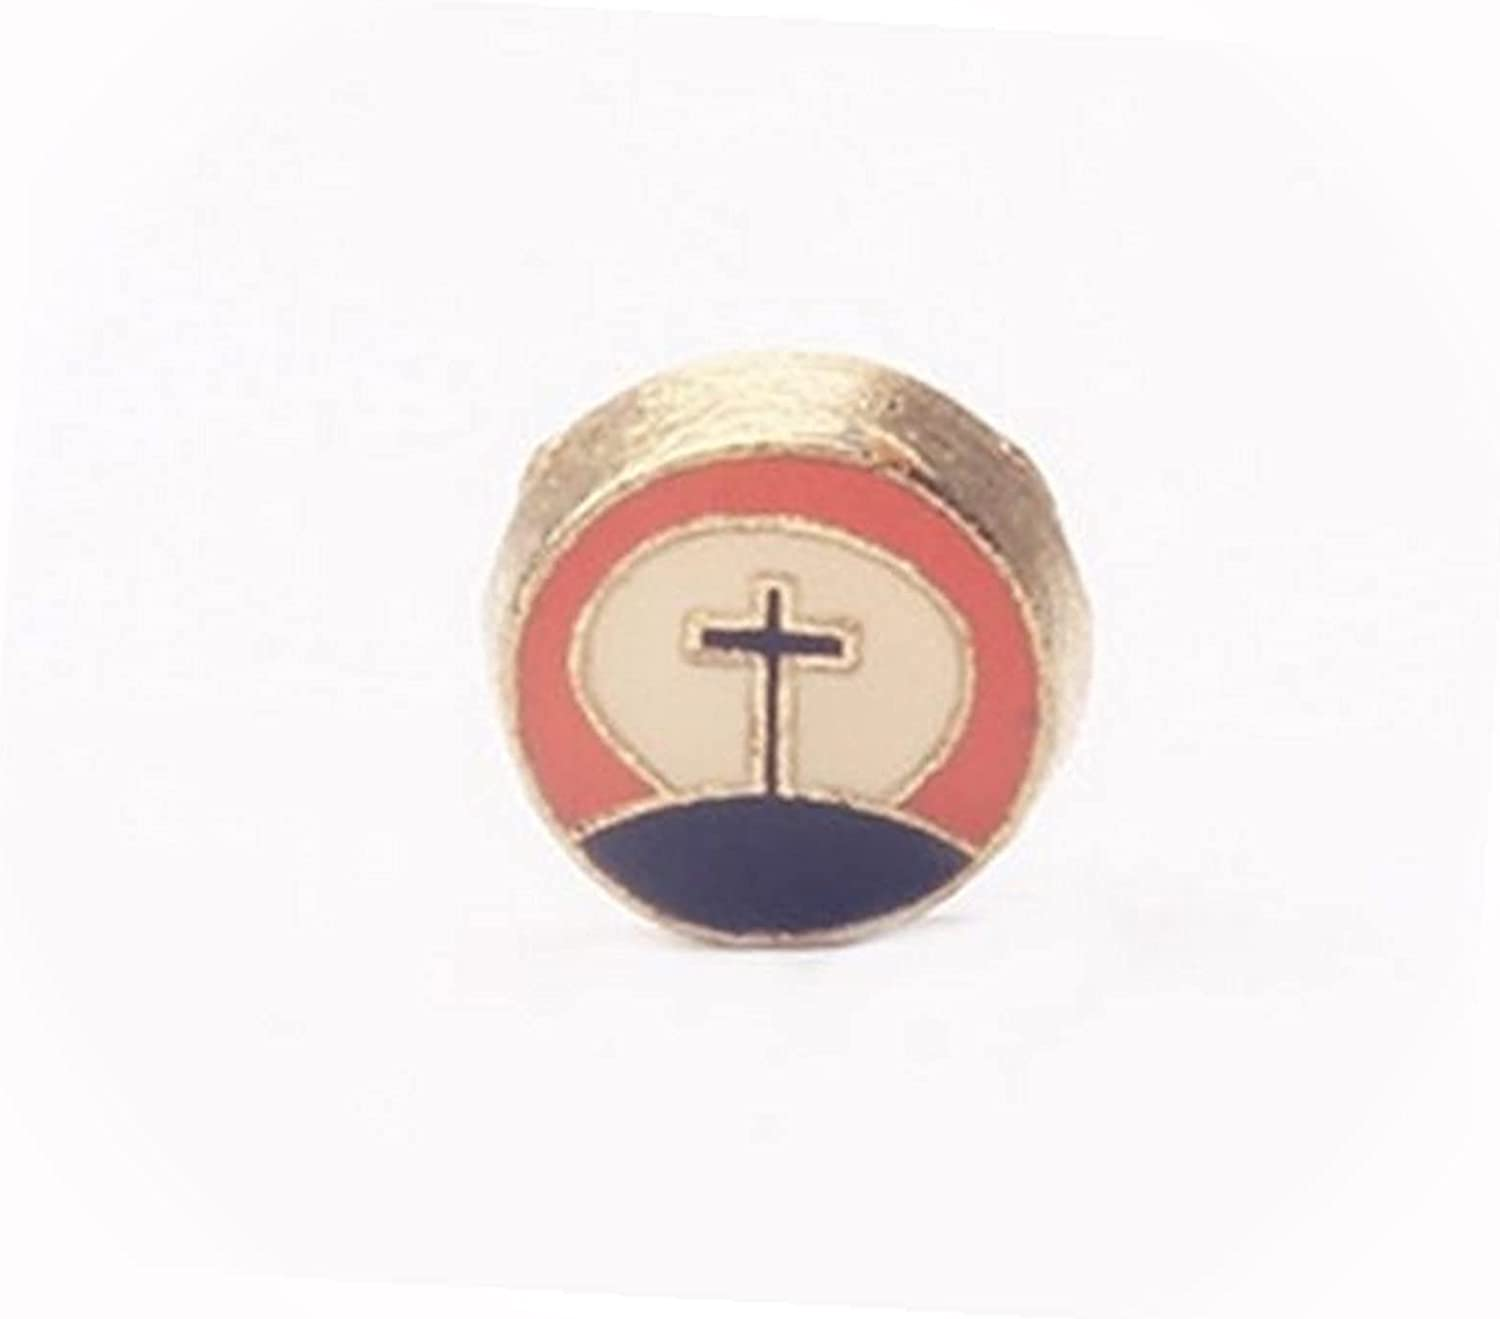 New Cross ON A Hill Enamel Gold Floating 8mm SALENEW very popular Religious for Spring new work one after another Charm